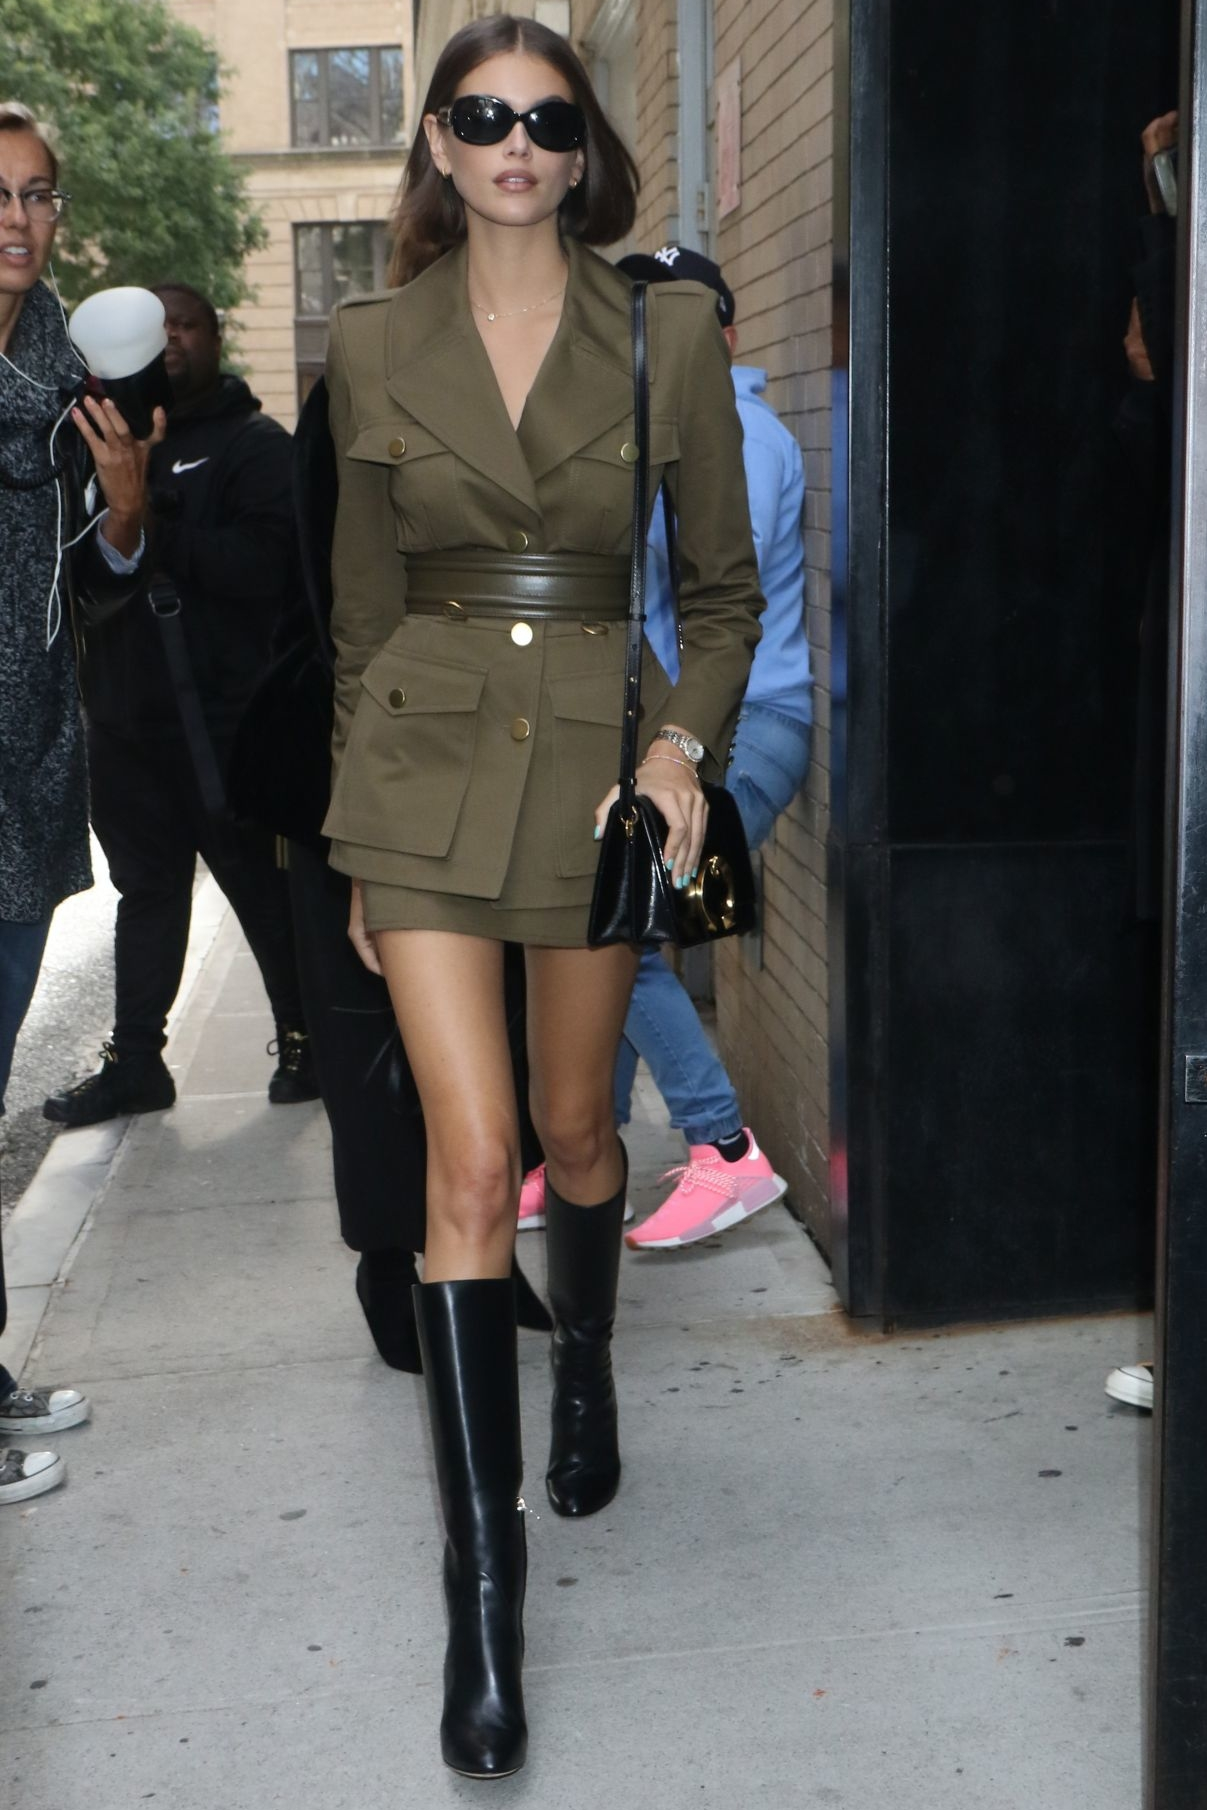 jacket olive green khaki skirt mini skirt military style kaia gerber model off-duty fall outfits boots